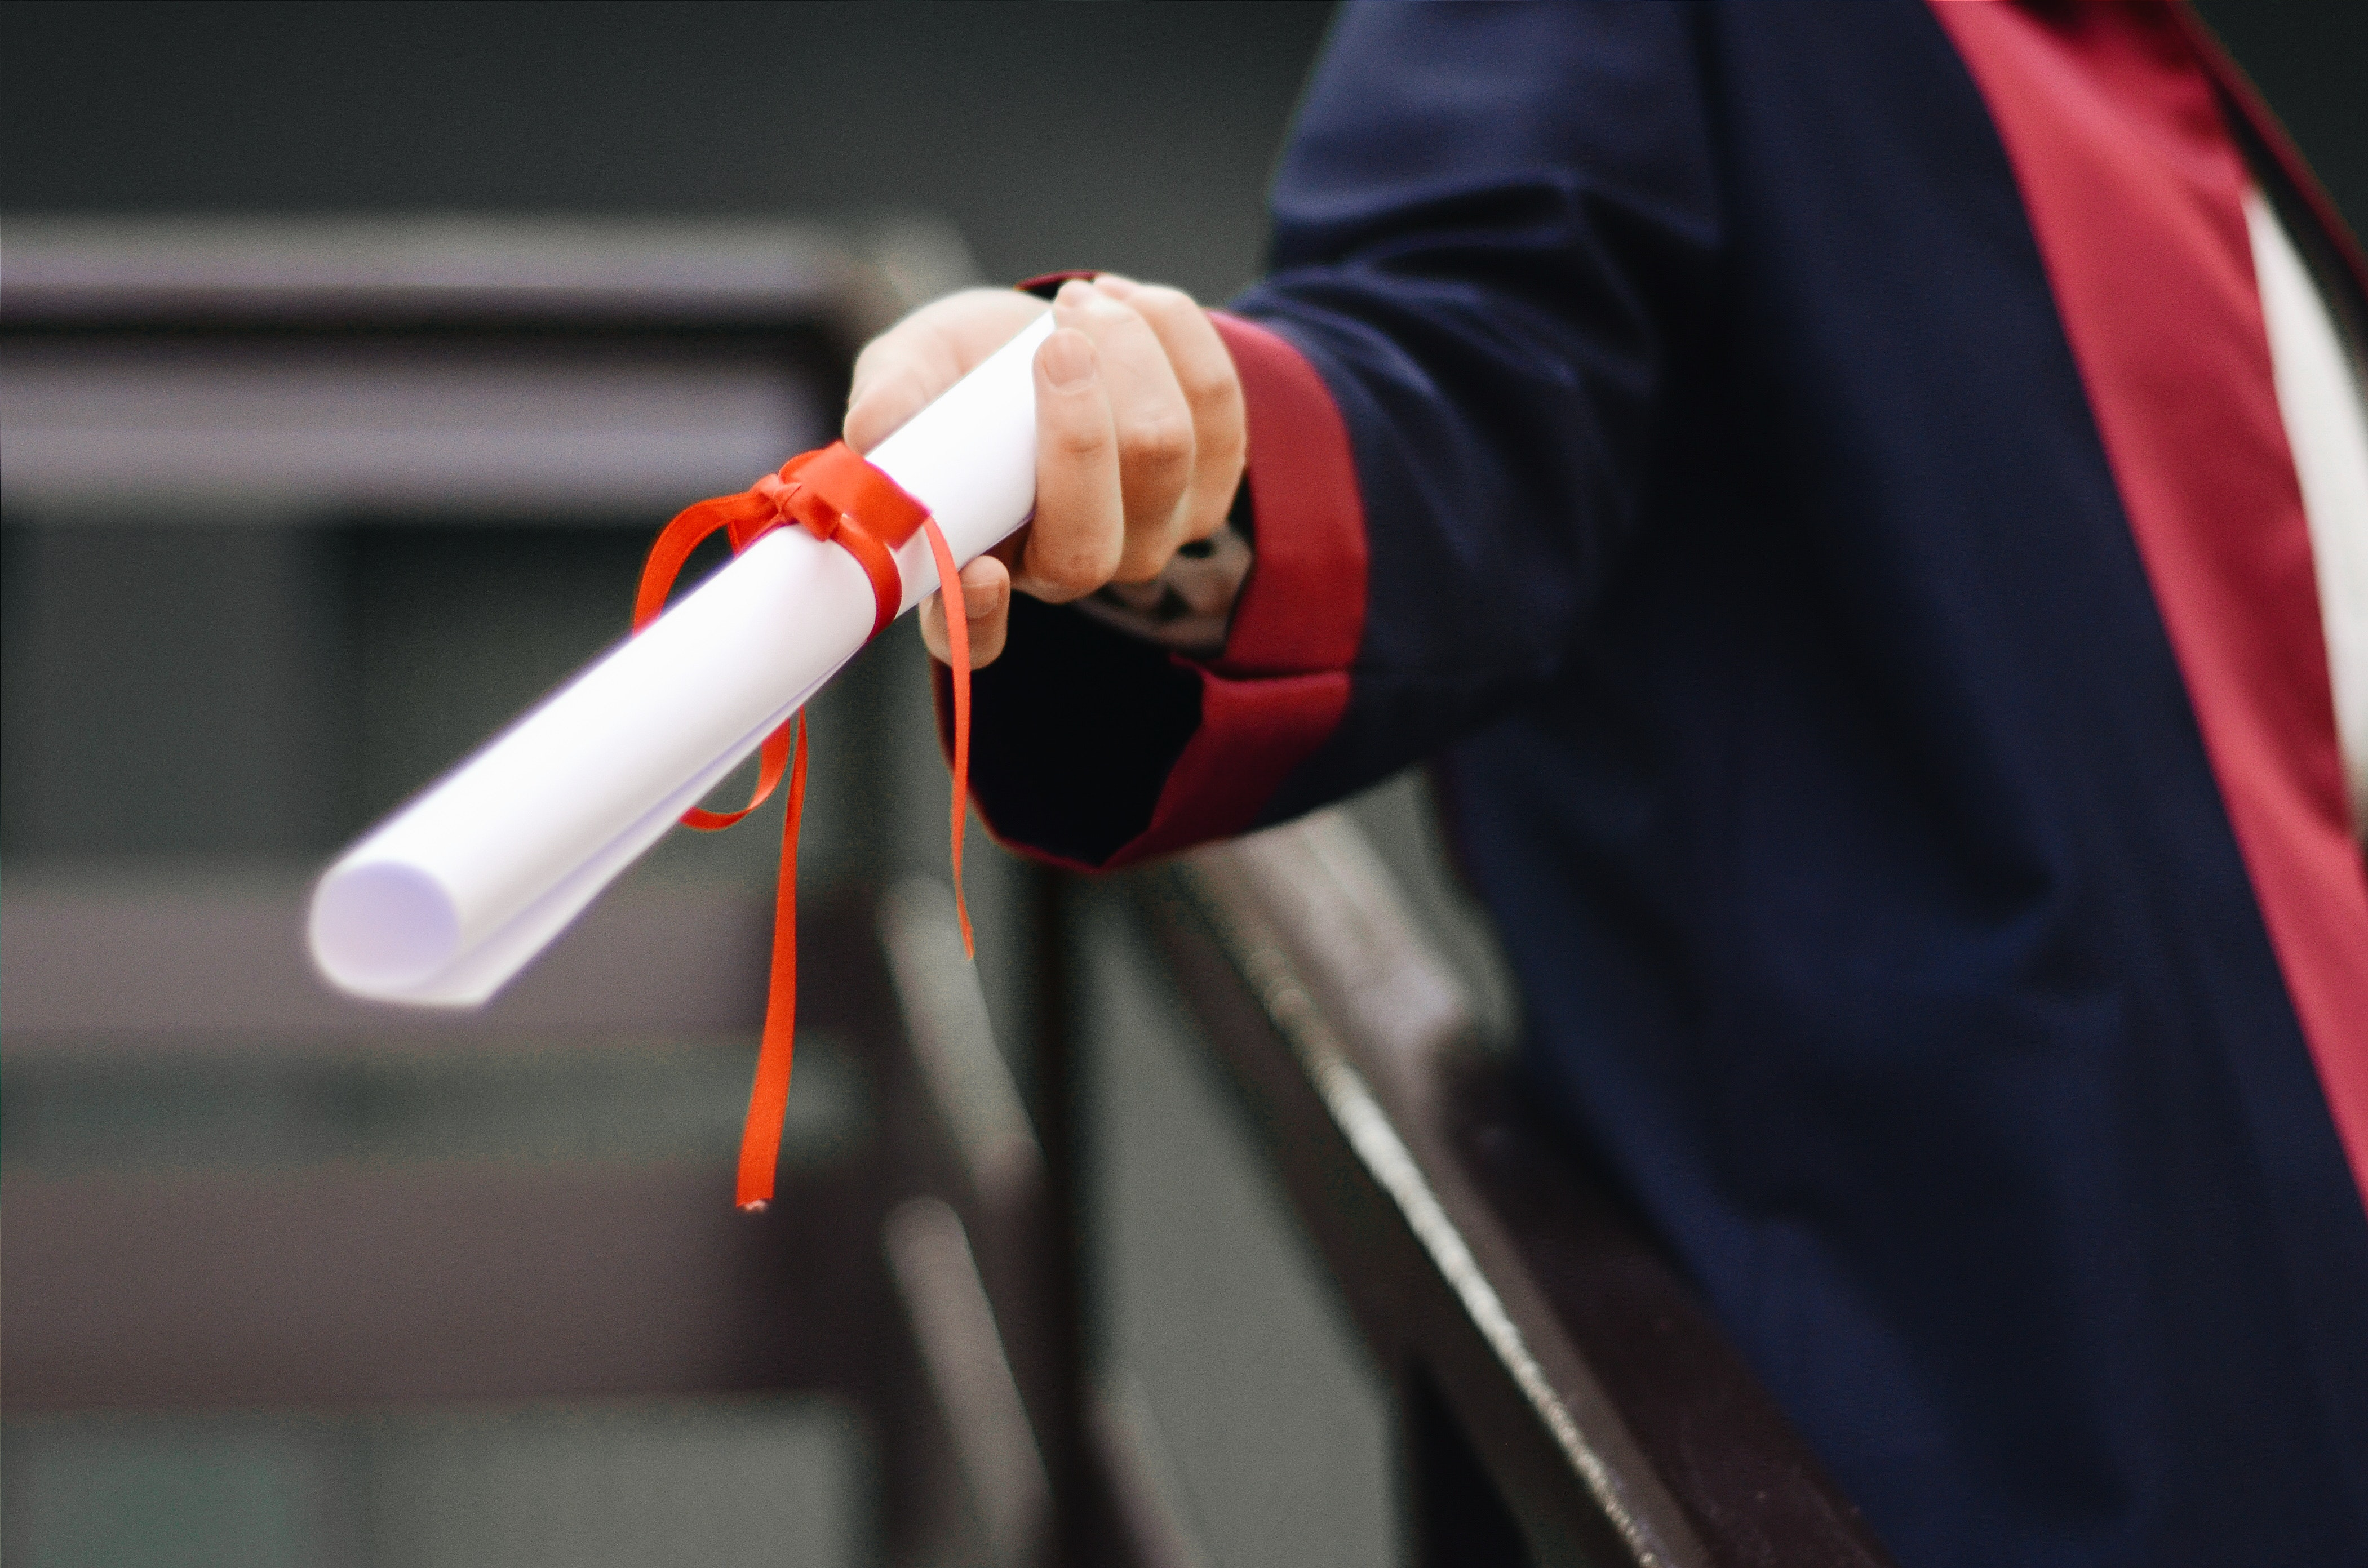 Diploma earned after scholars study in the UK